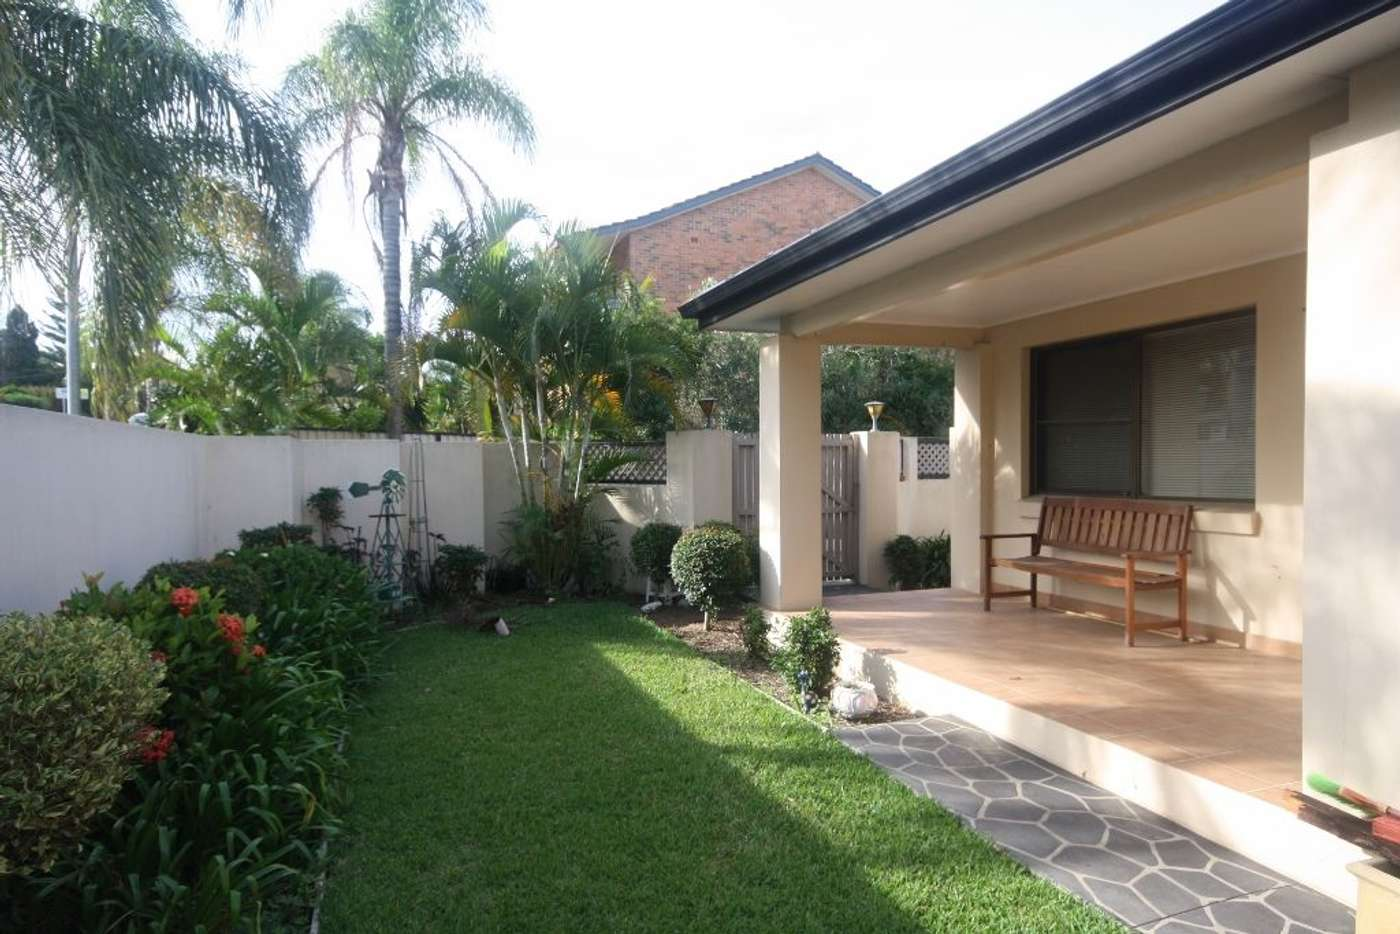 Main view of Homely house listing, 1/237 Edgar Street, Condell Park NSW 2200